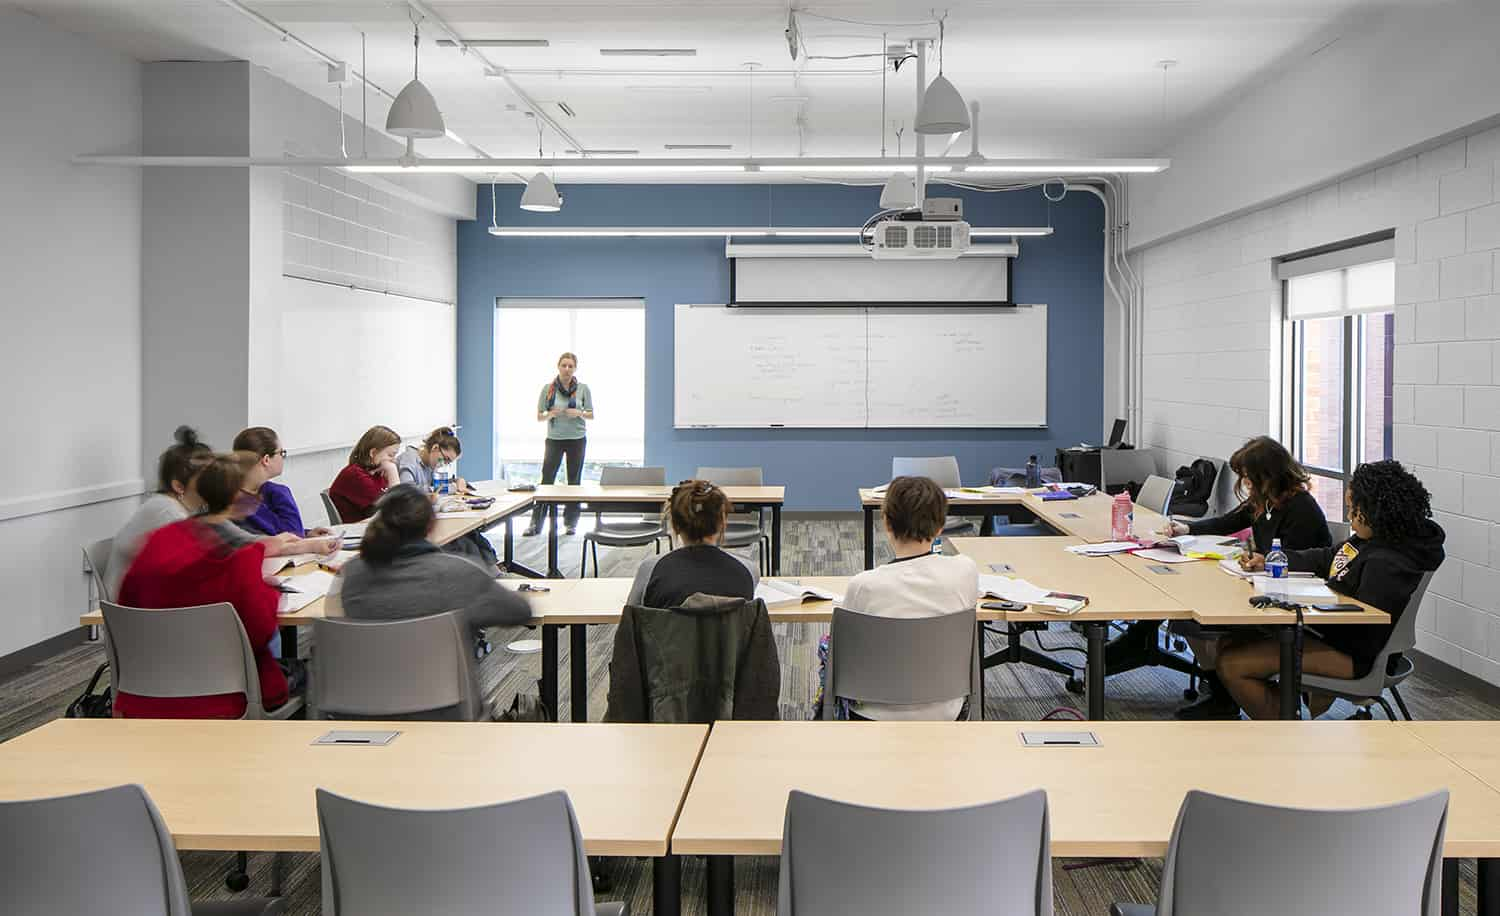 Students attending a lecture in a remodeled classroom.